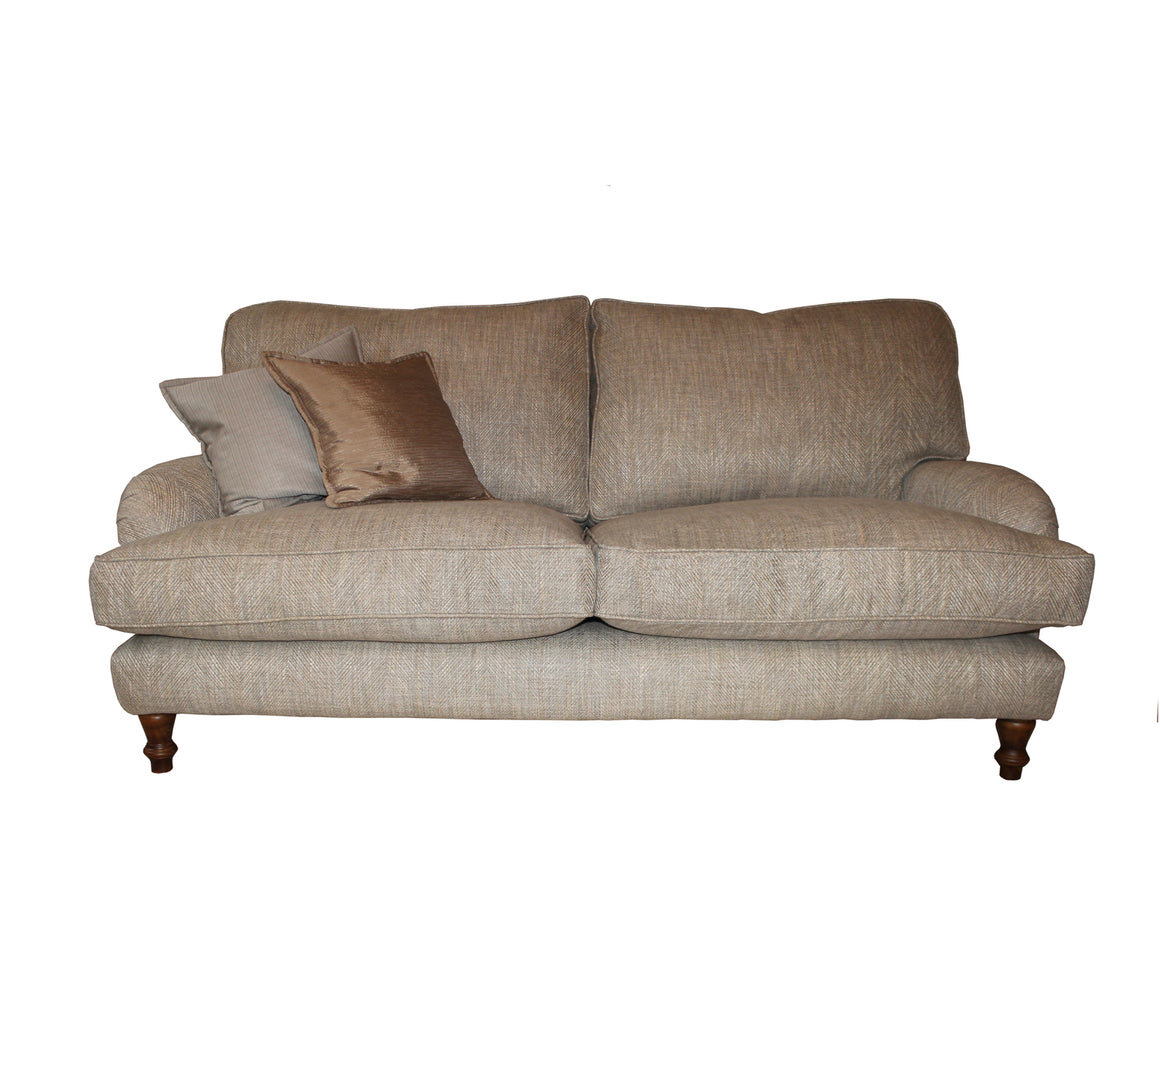 Burnham Cushion Back Sofa in Sanderson Groovy